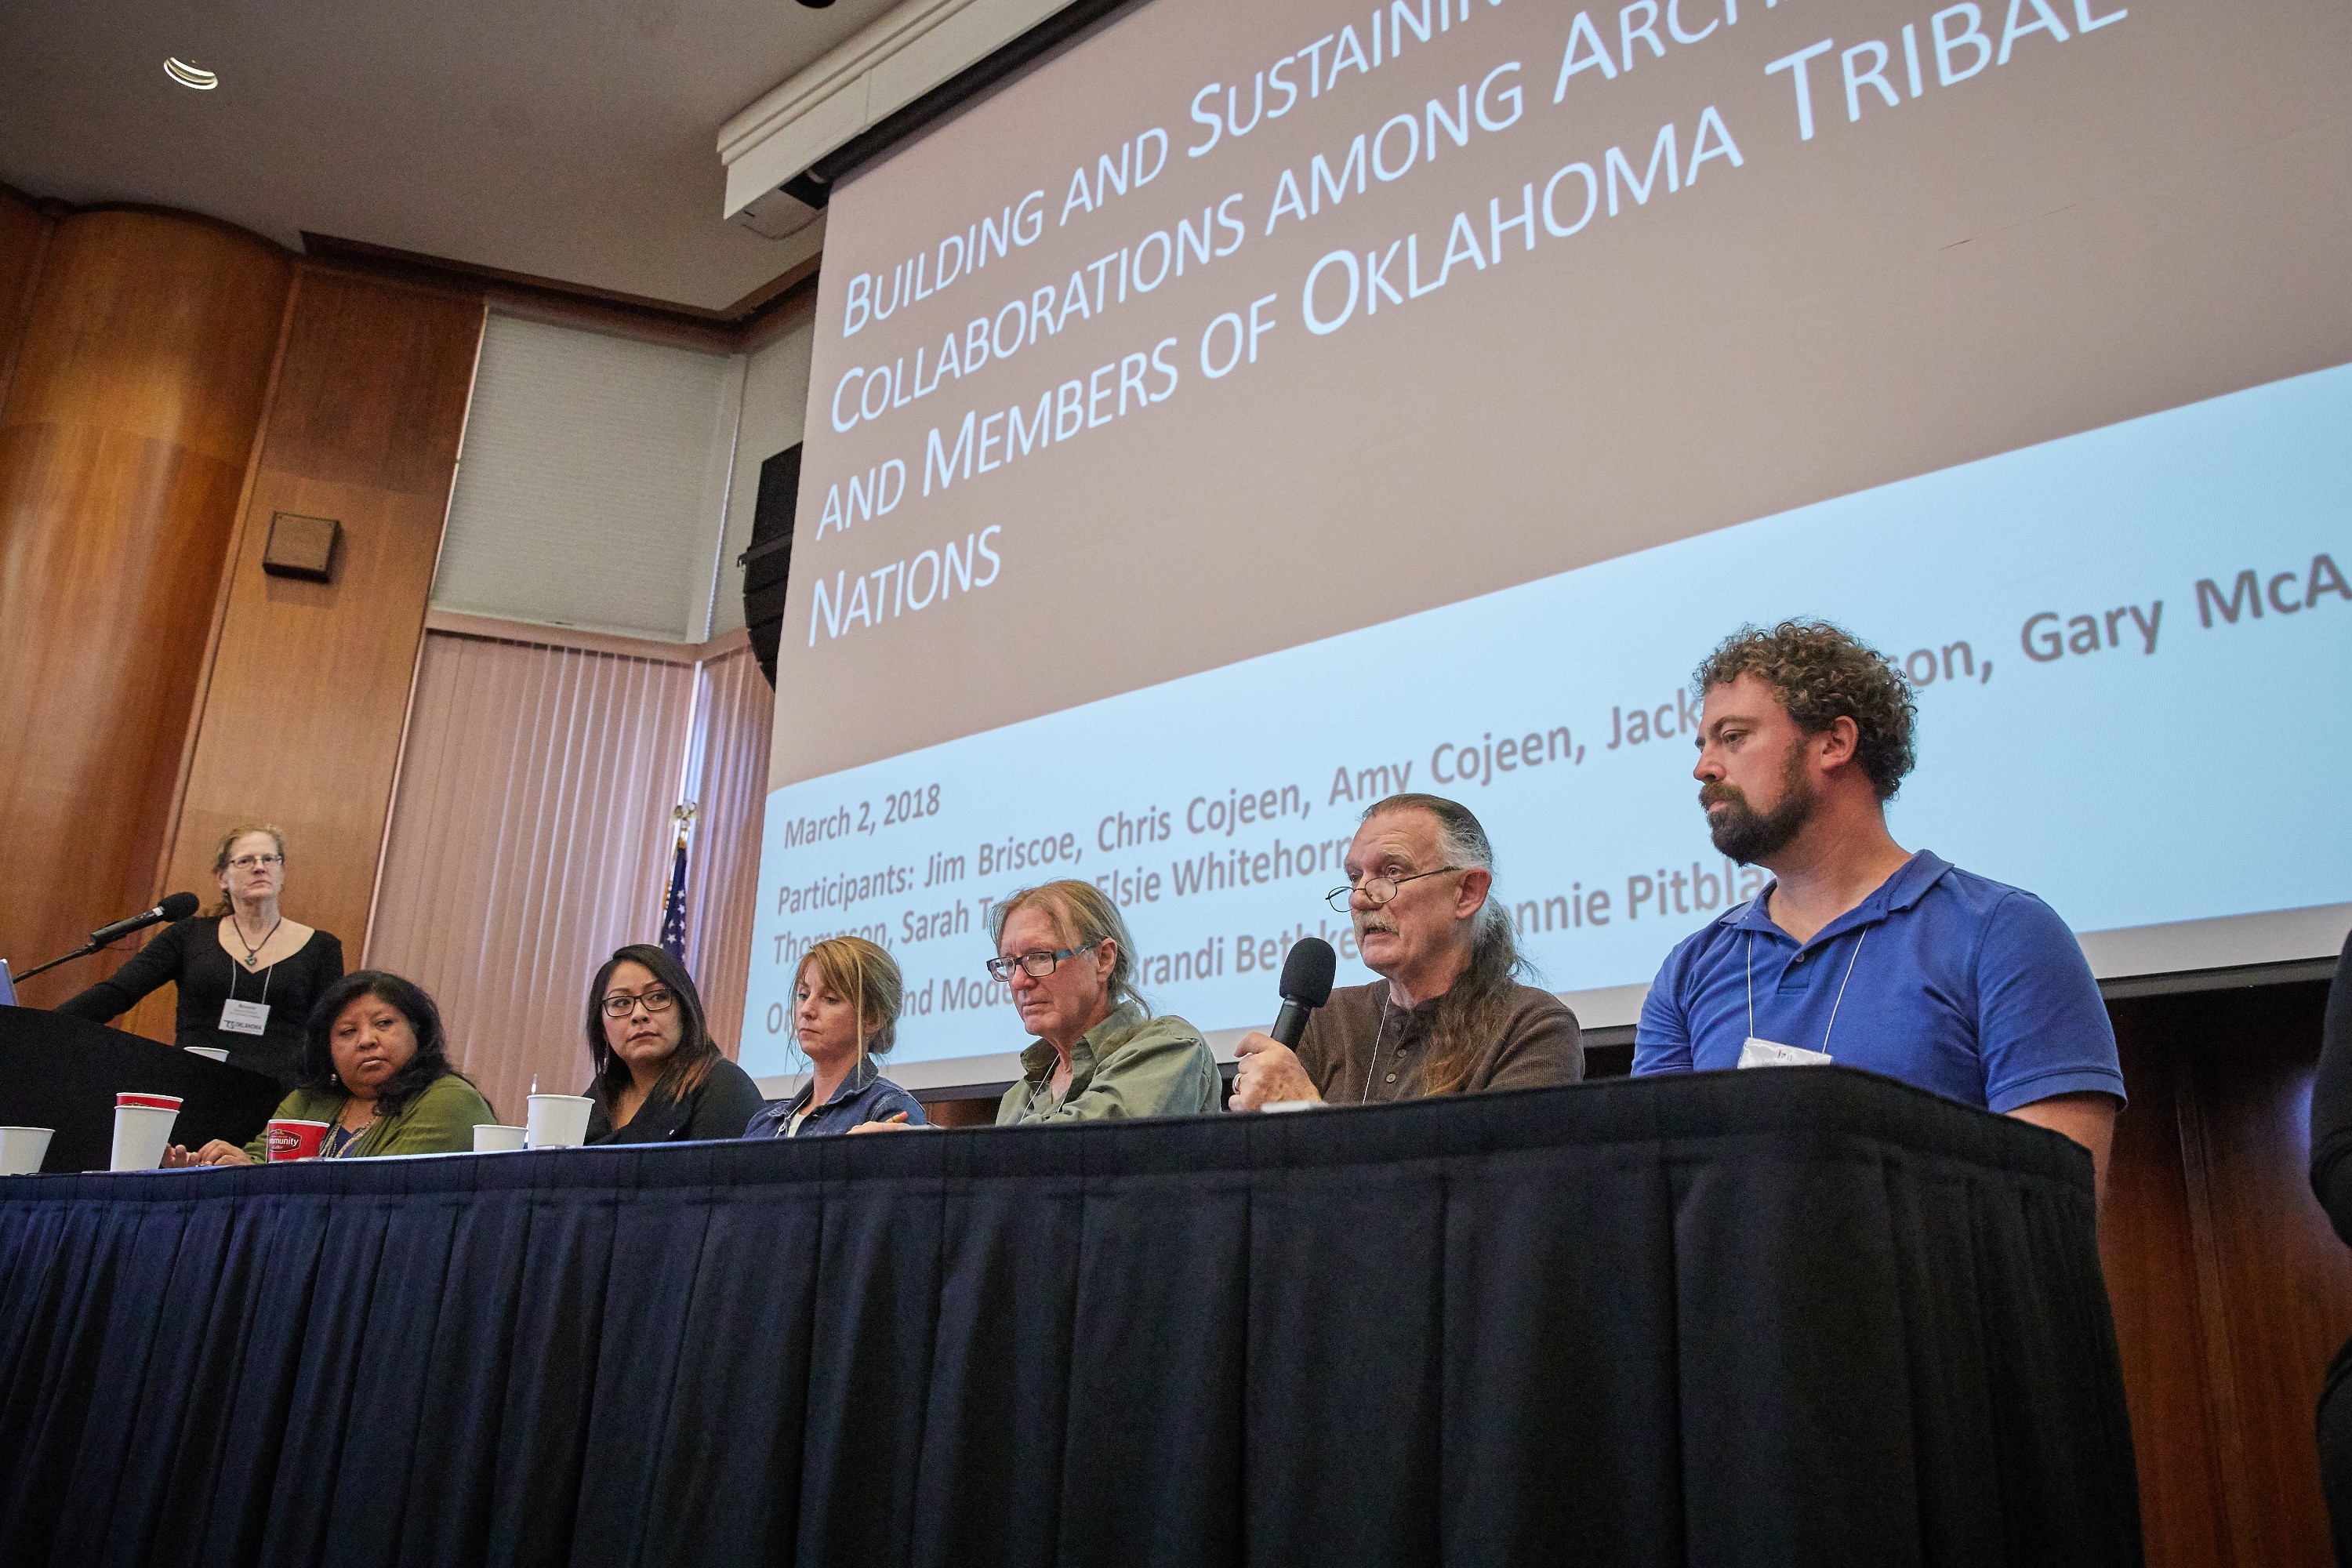 Representatives of Oklahoma's archaeological community participate in the first collaboration forum in 2018.